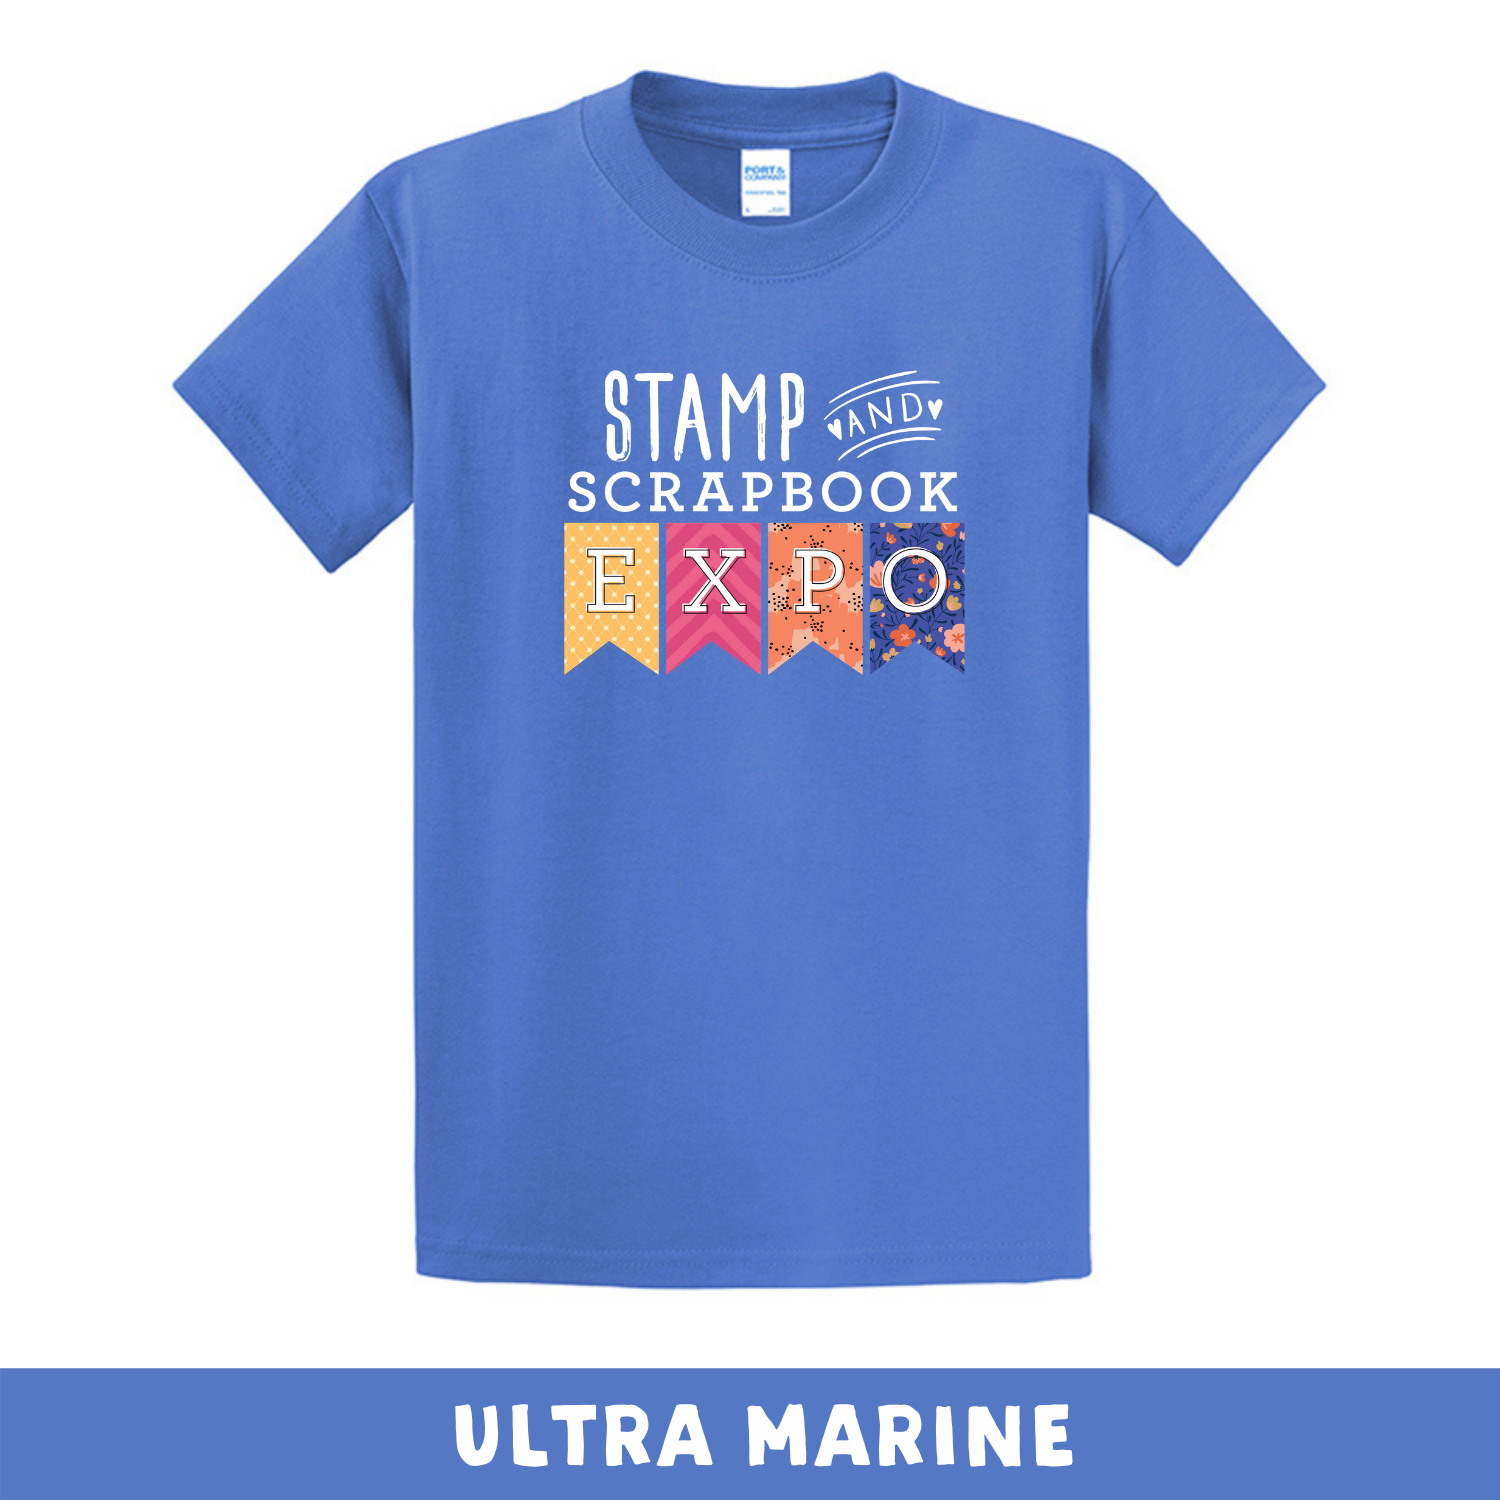 Ultra Marine - Crew Neck Unisex T-Shirt - Stamp & Scrapbook Expo Color Logo